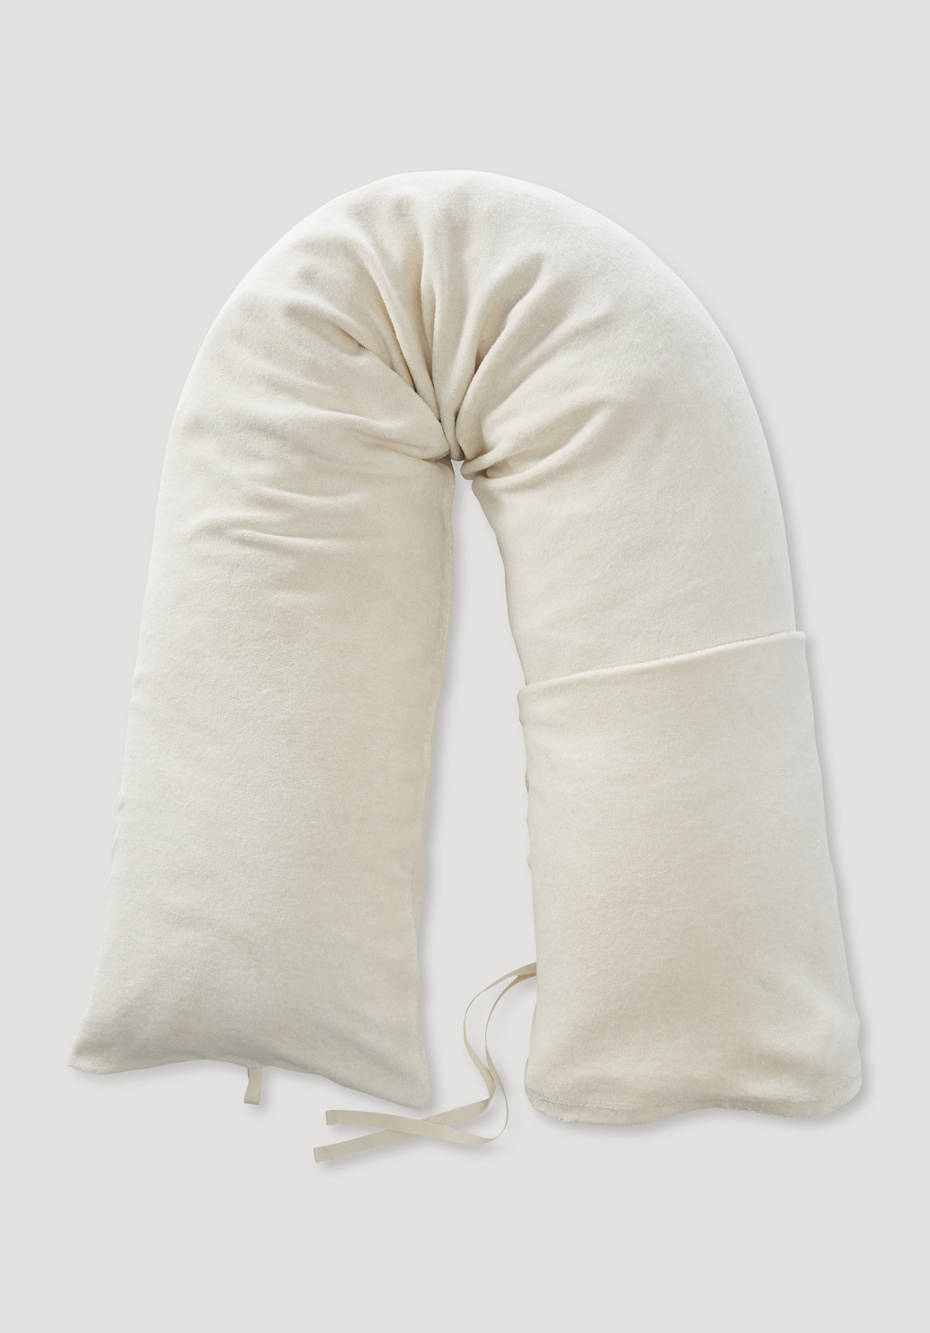 Nursing pillow case made from pure organic cotton